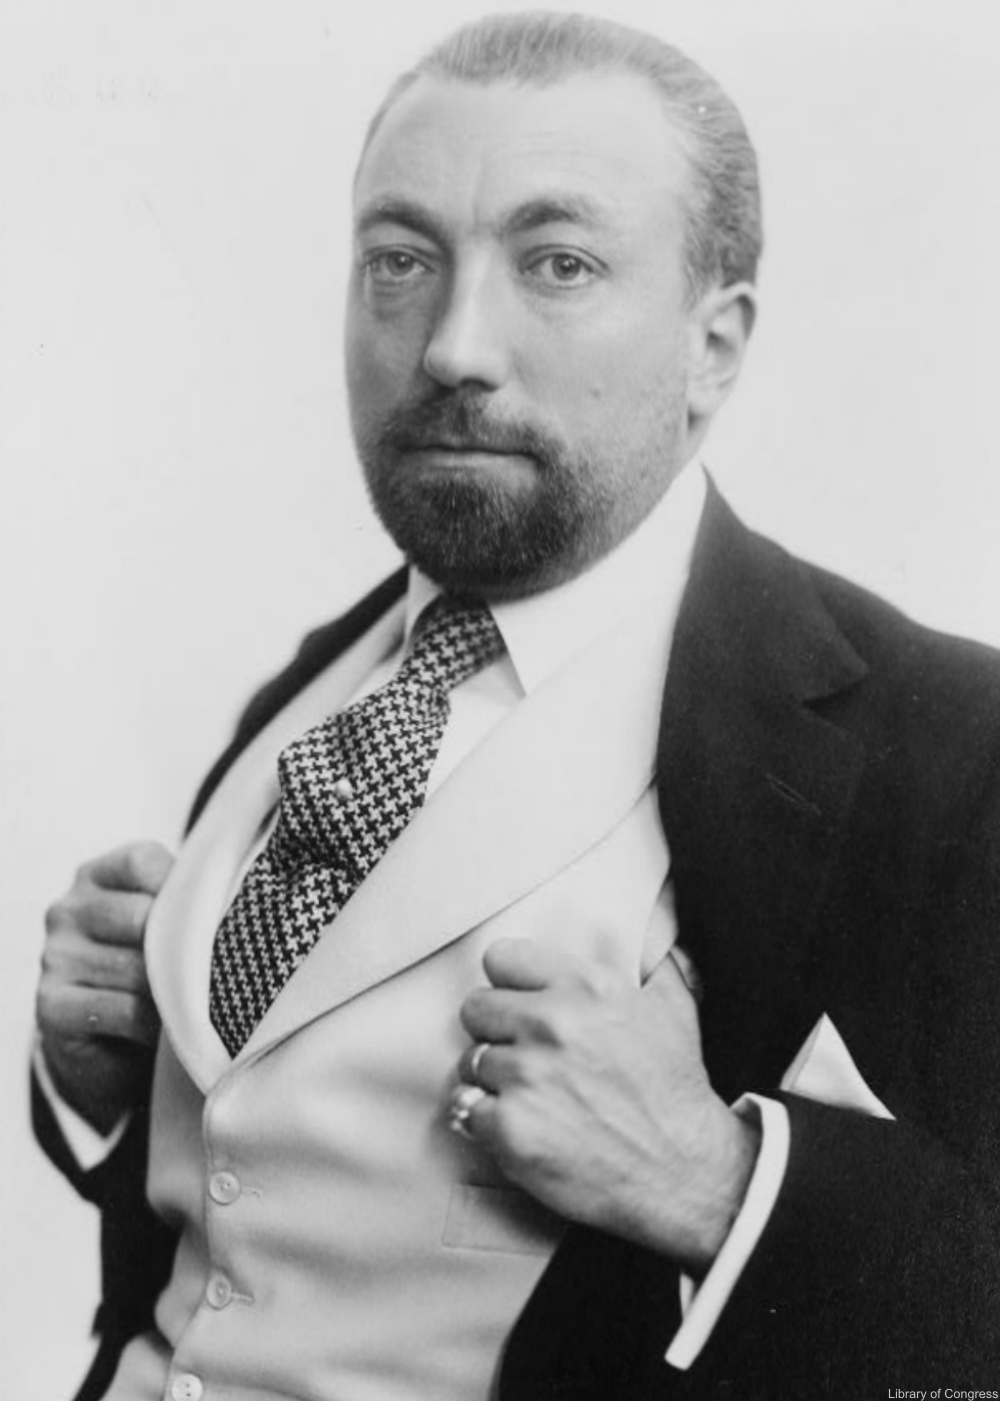 Couture designer Paul Poiret- the history of the first women's pants